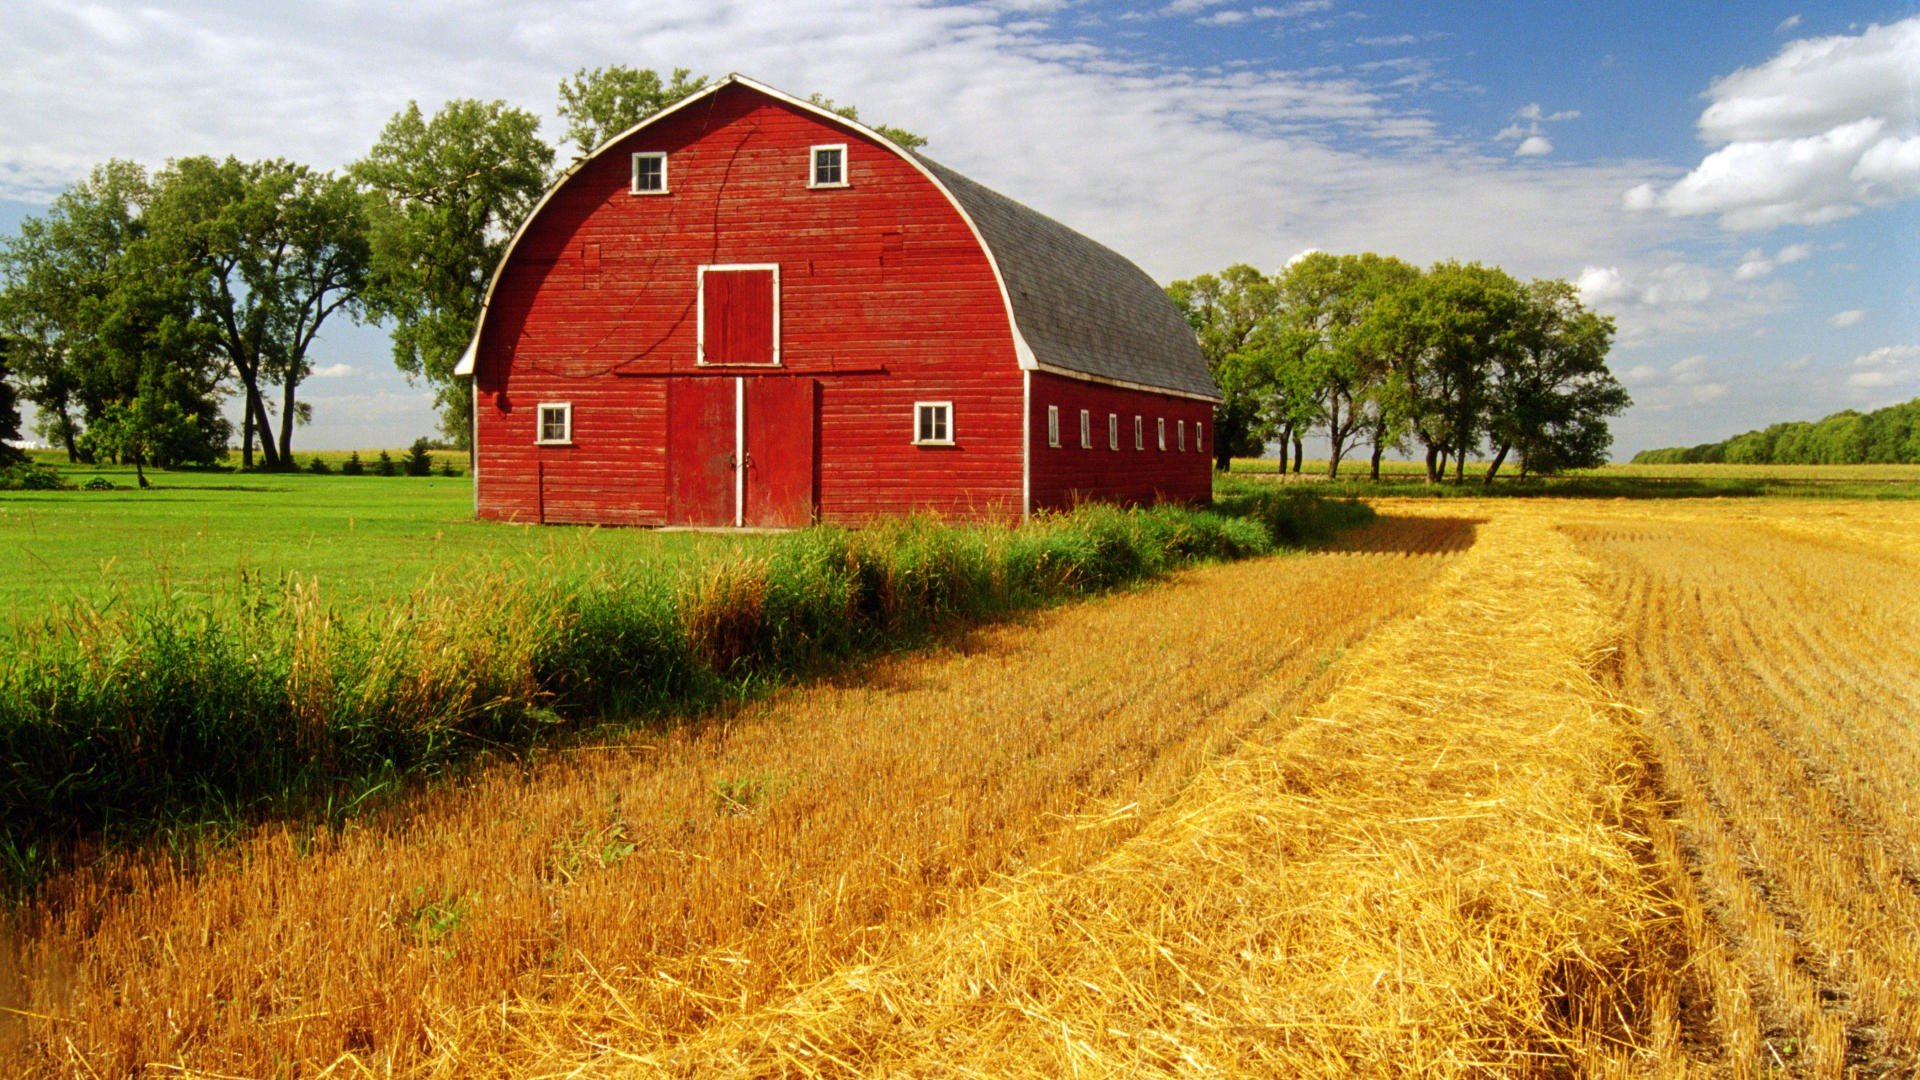 farm homes wallpaper - photo #11